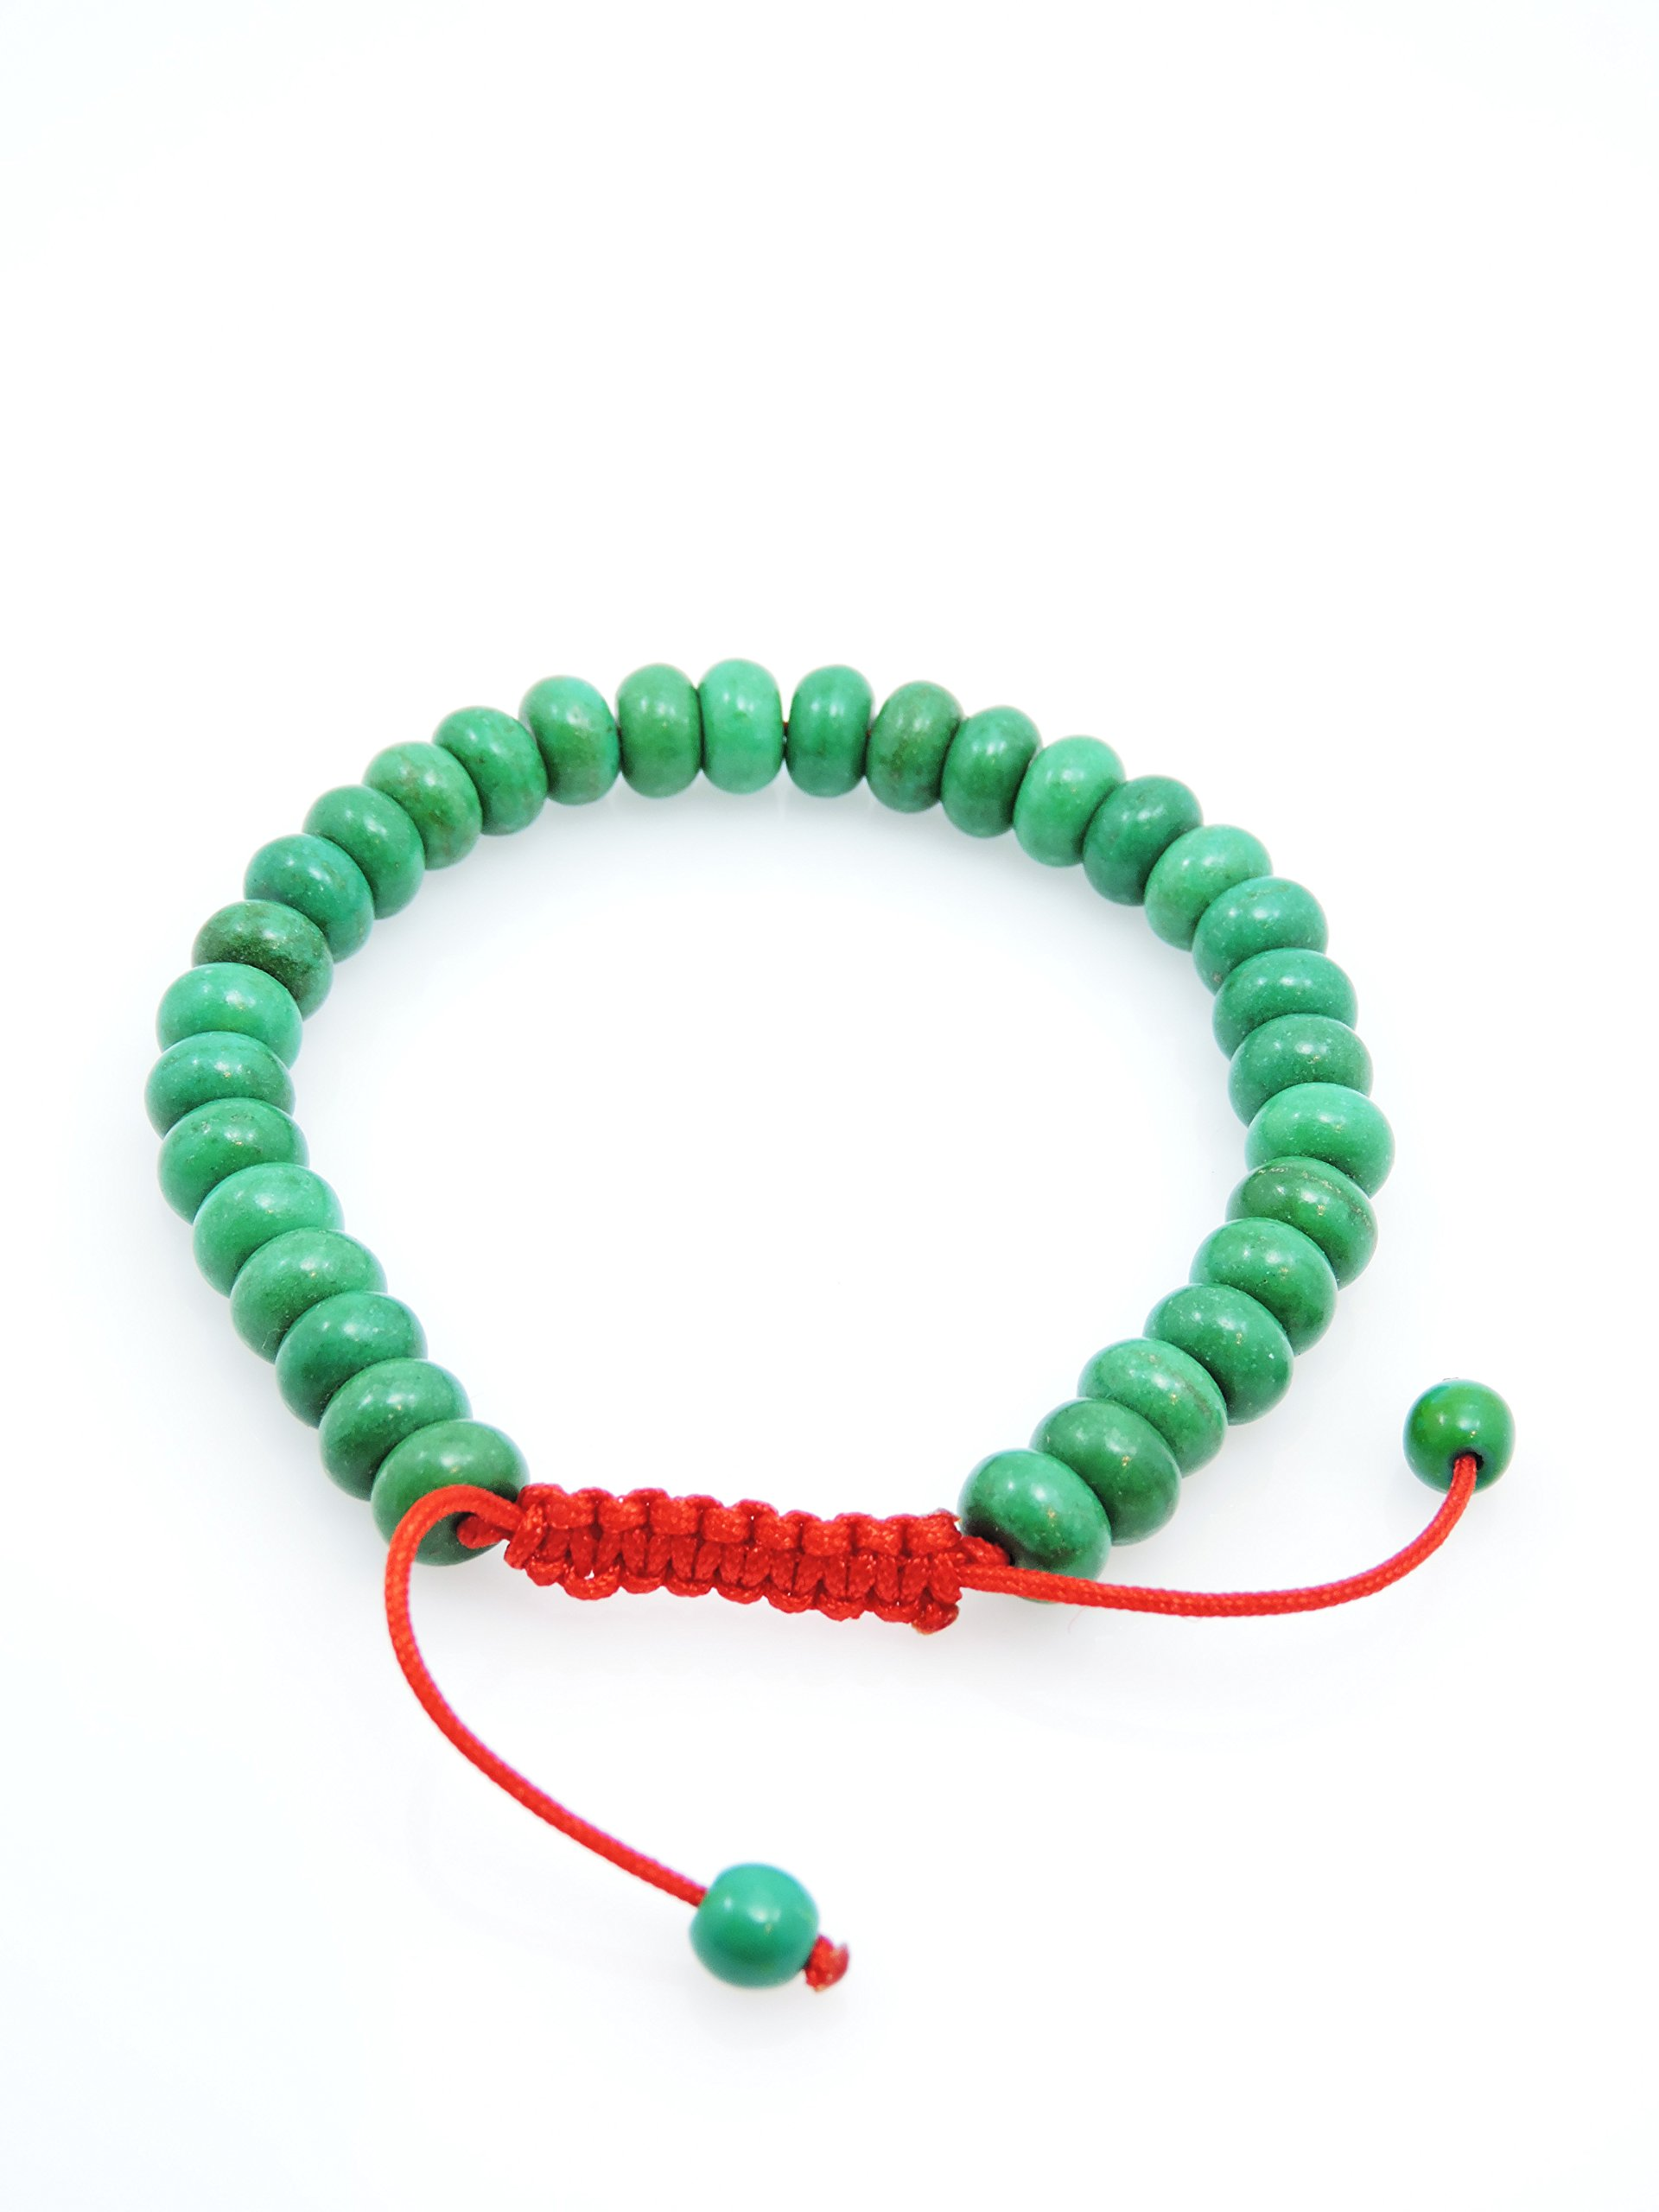 Hands Of Tibet Tibetan Turquoise Wrist Mala/Bracelet for Meditation